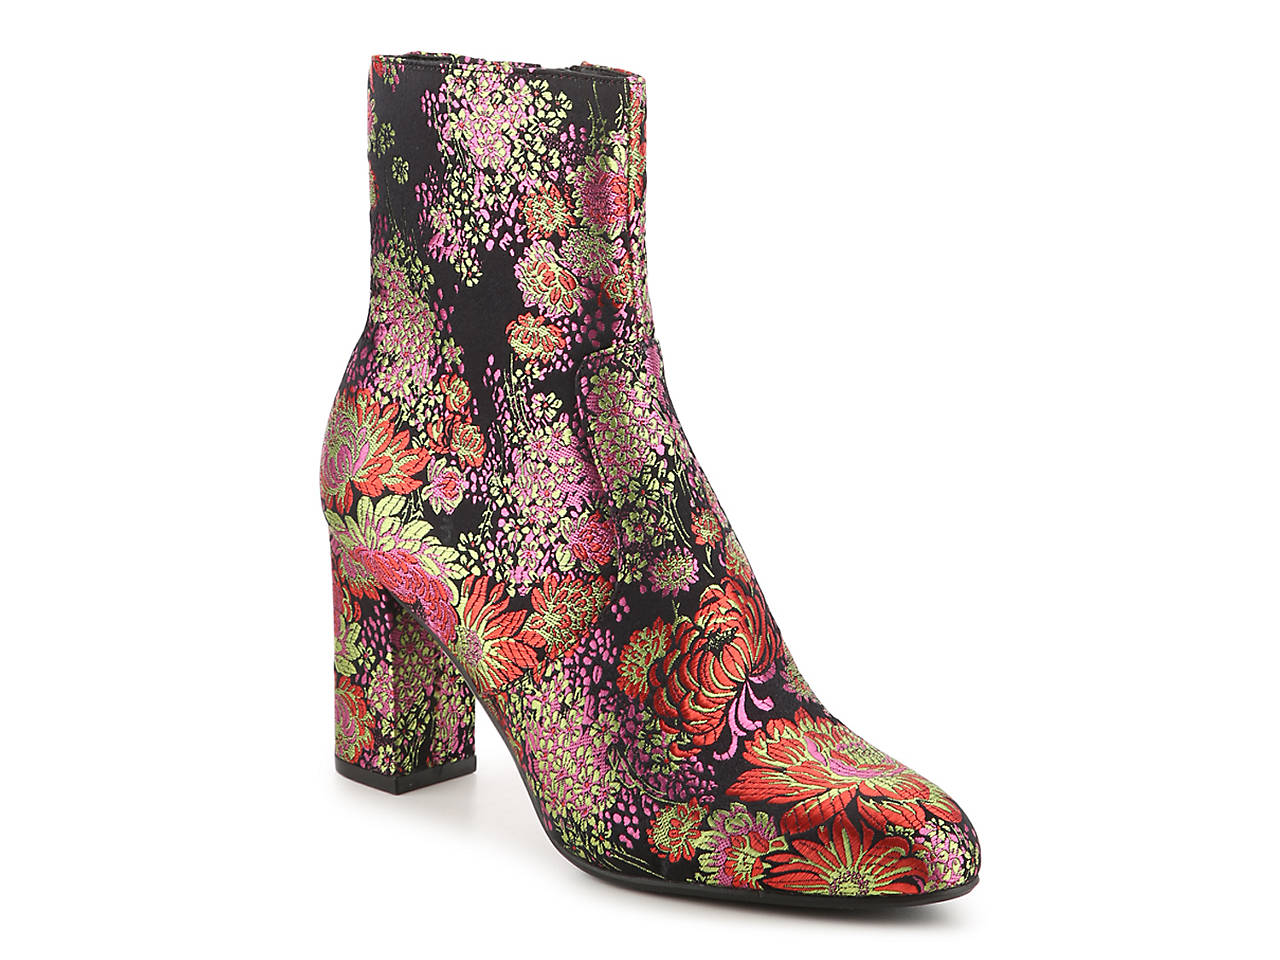 Loving this floral print bootie